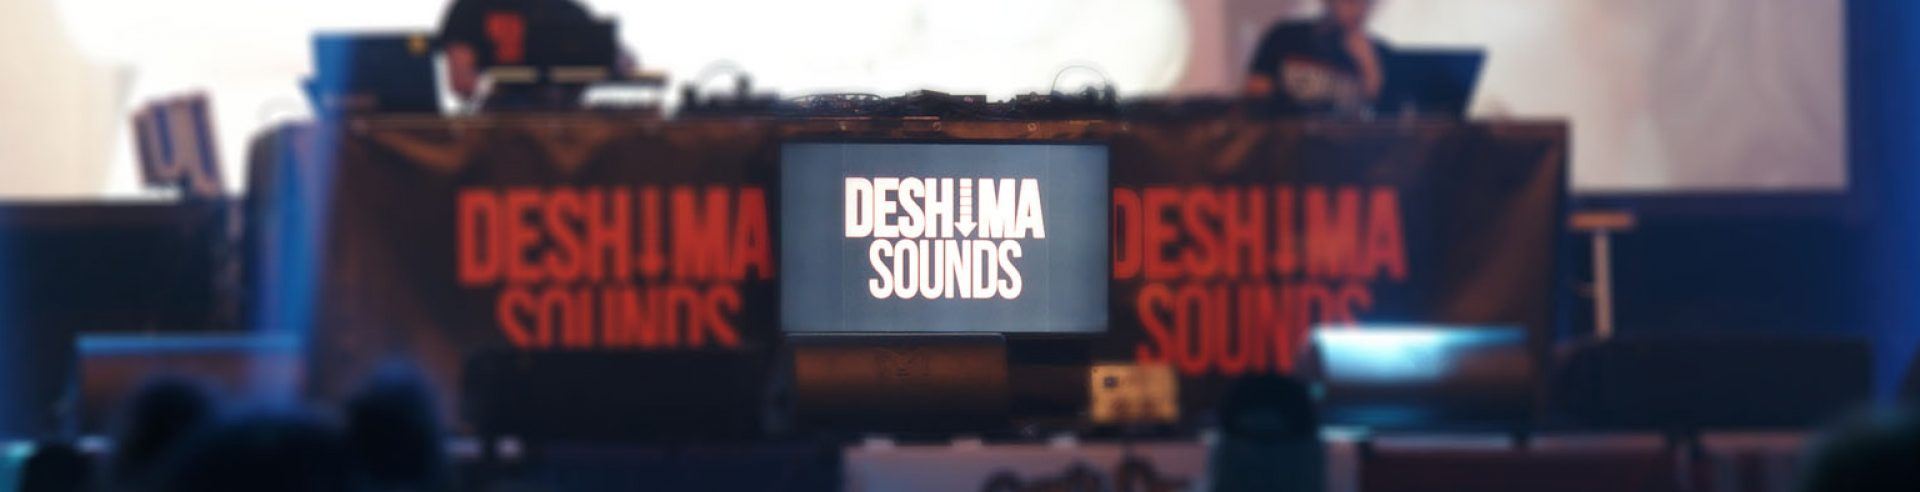 Deshima Sounds